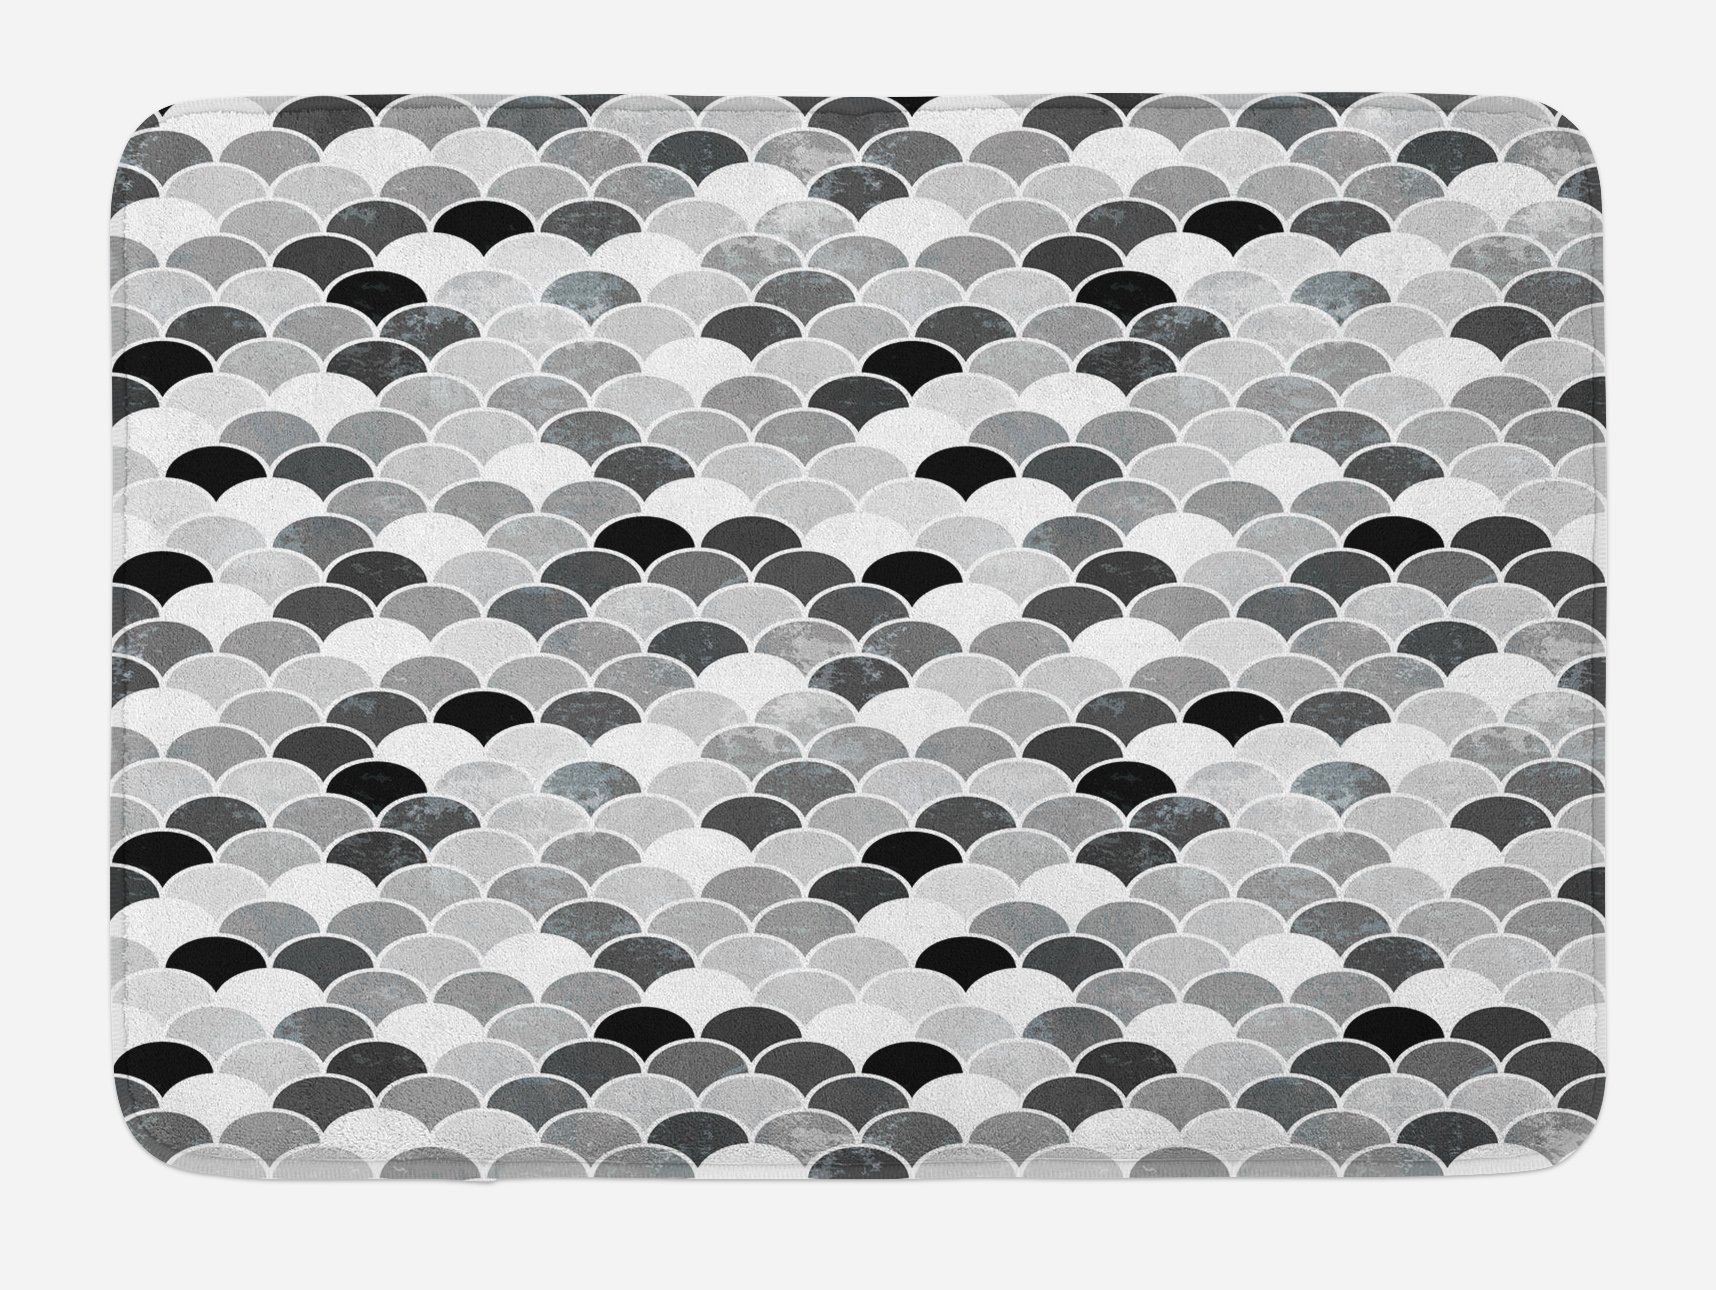 Ambesonne Fish Bath Mat, Squama Design with Aquatic Inspirations Animal Skin Scales Pattern Monochrome, Plush Bathroom Decor Mat with Non Slip Backing, 29.5 W X 17.5 W Inches, Black Grey White by Ambesonne